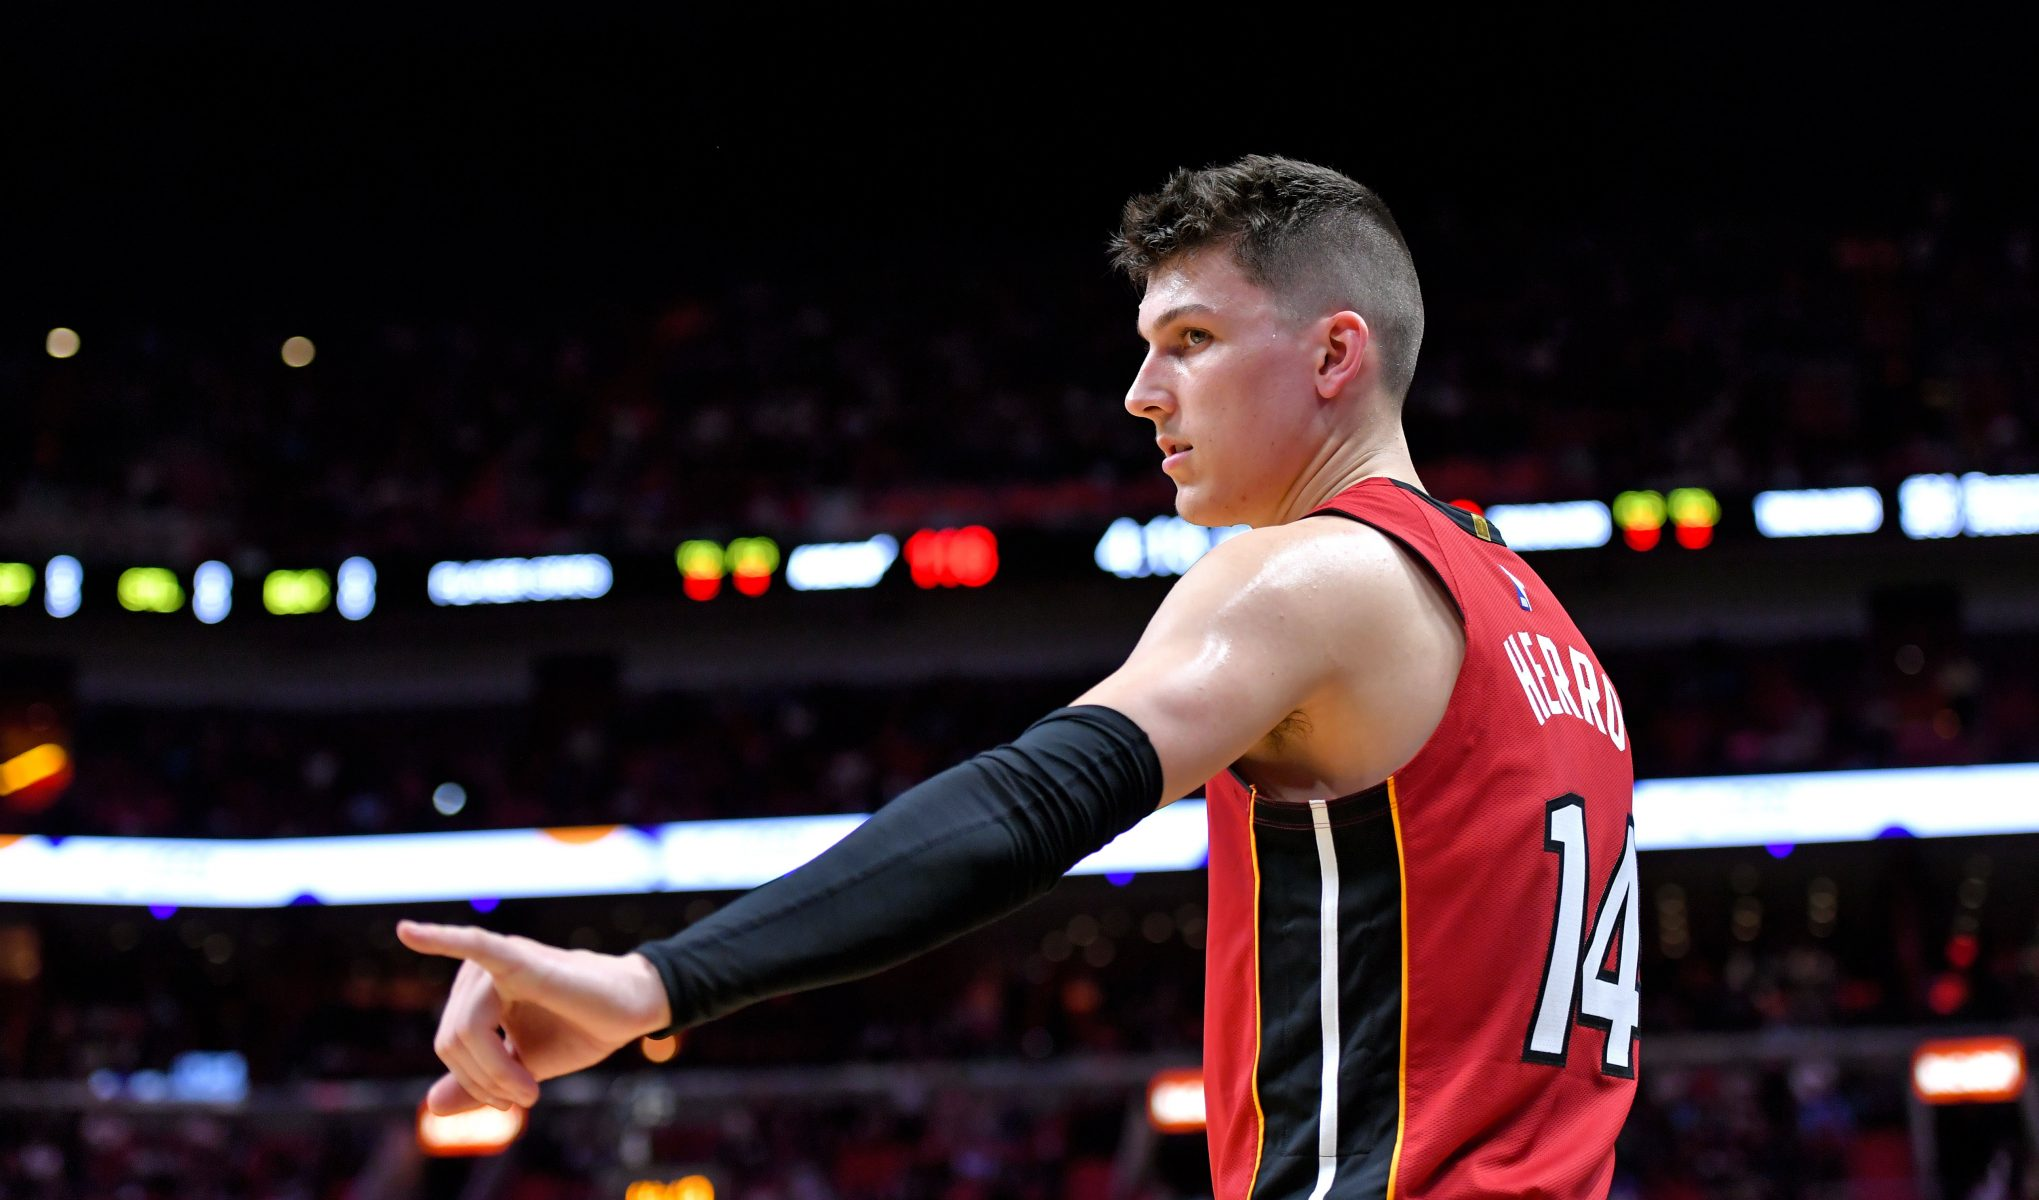 Miami Heat News: Tyler Herro to Play Sunday vs. San Antonio Spurs